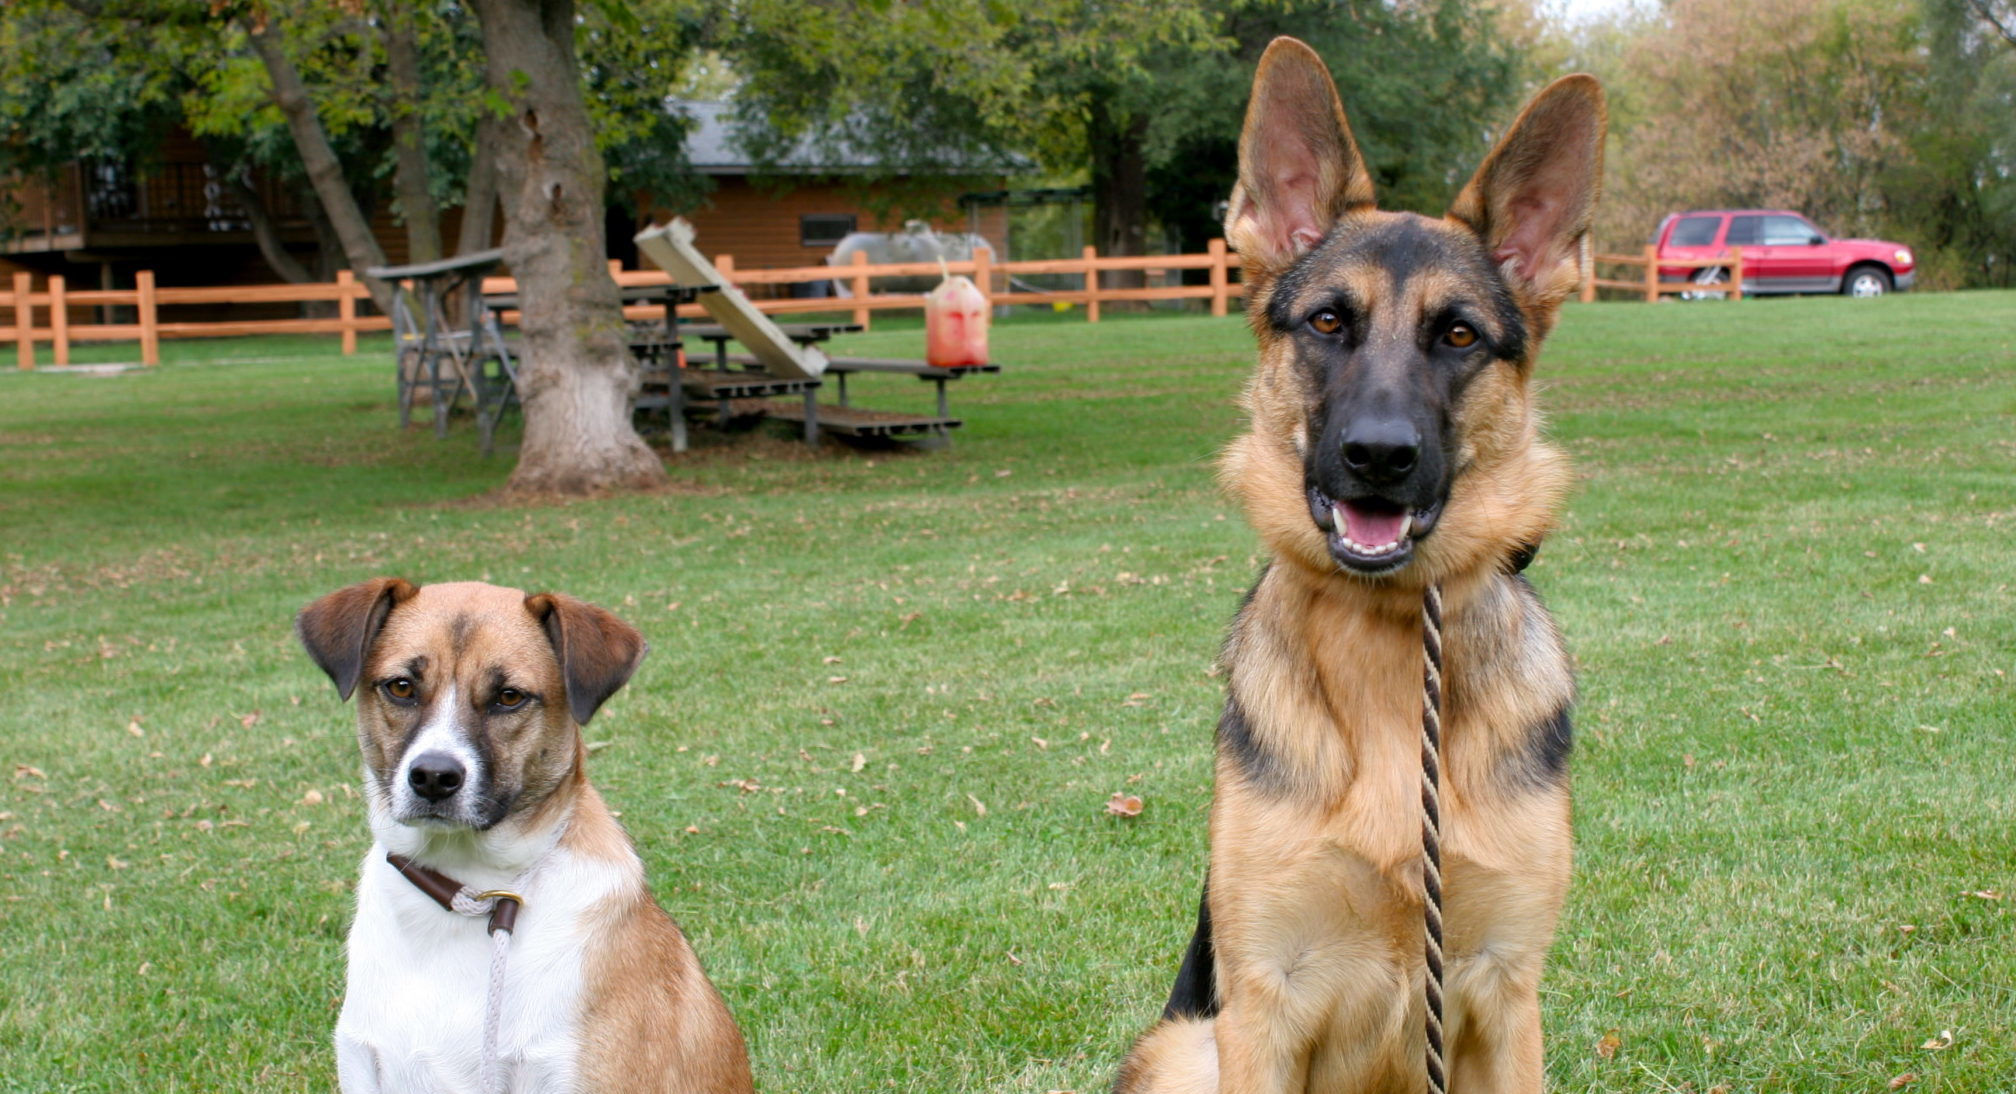 Can you manage bad behavior with obedience training?